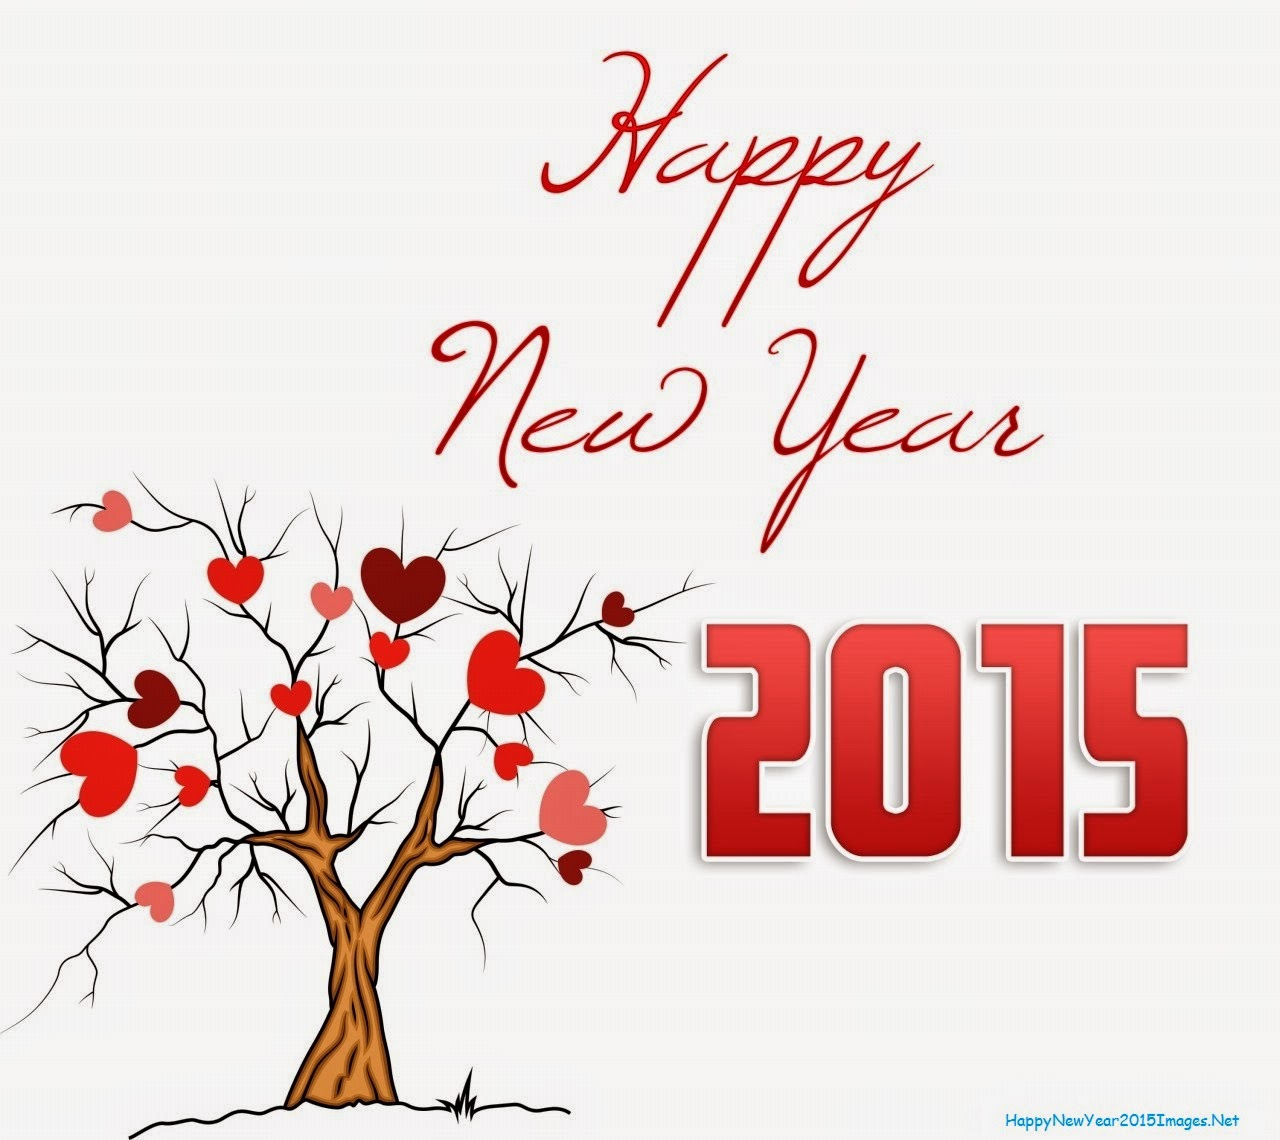 Love Happy New Year 2015 Wallpaper Desktop 548298   Ongur 1280x1140